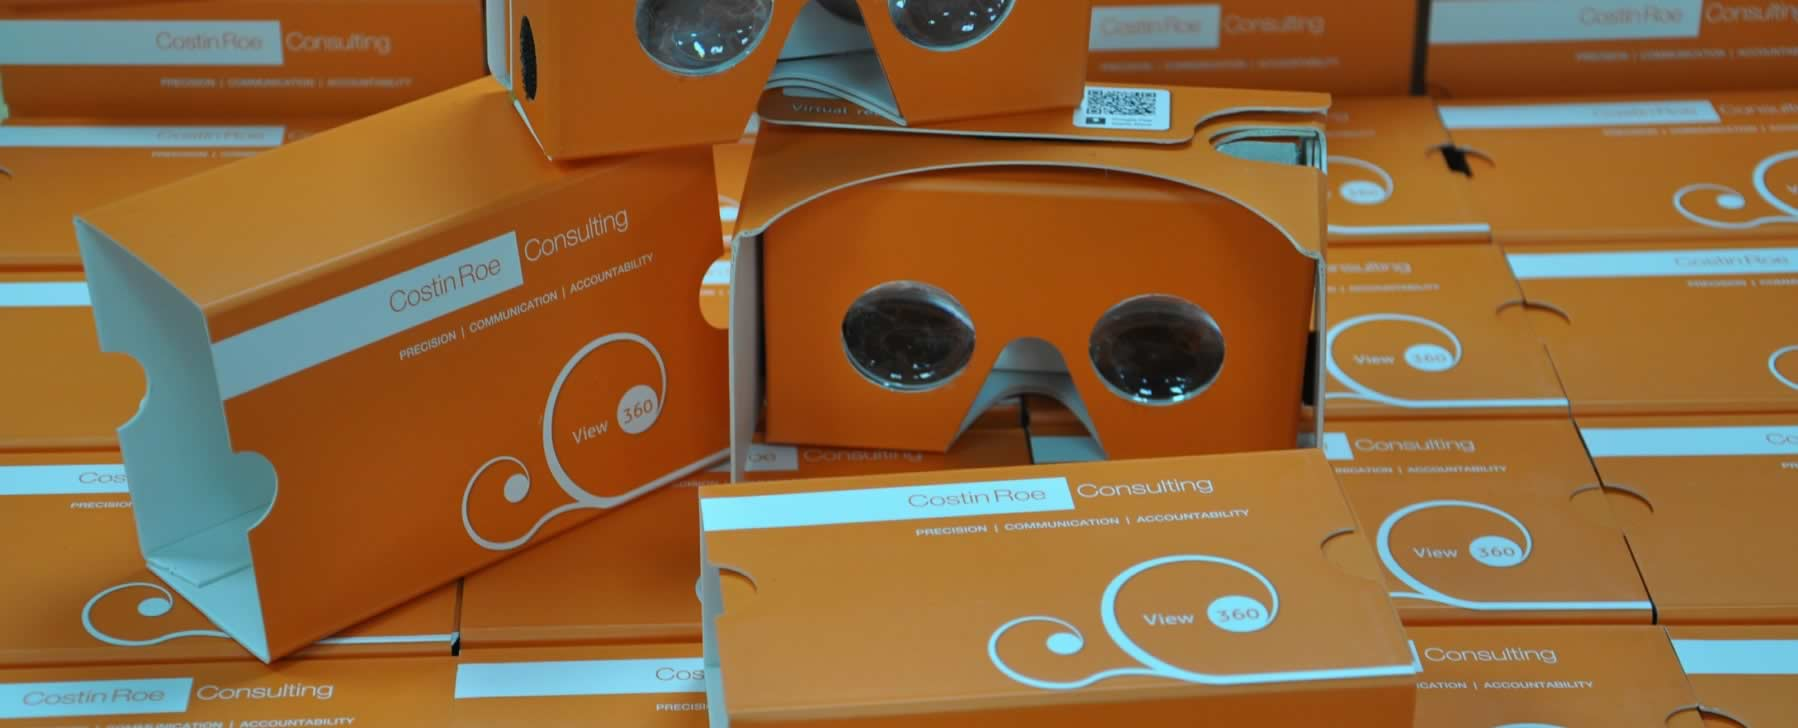 Costin Roe Consulting IVR viewer